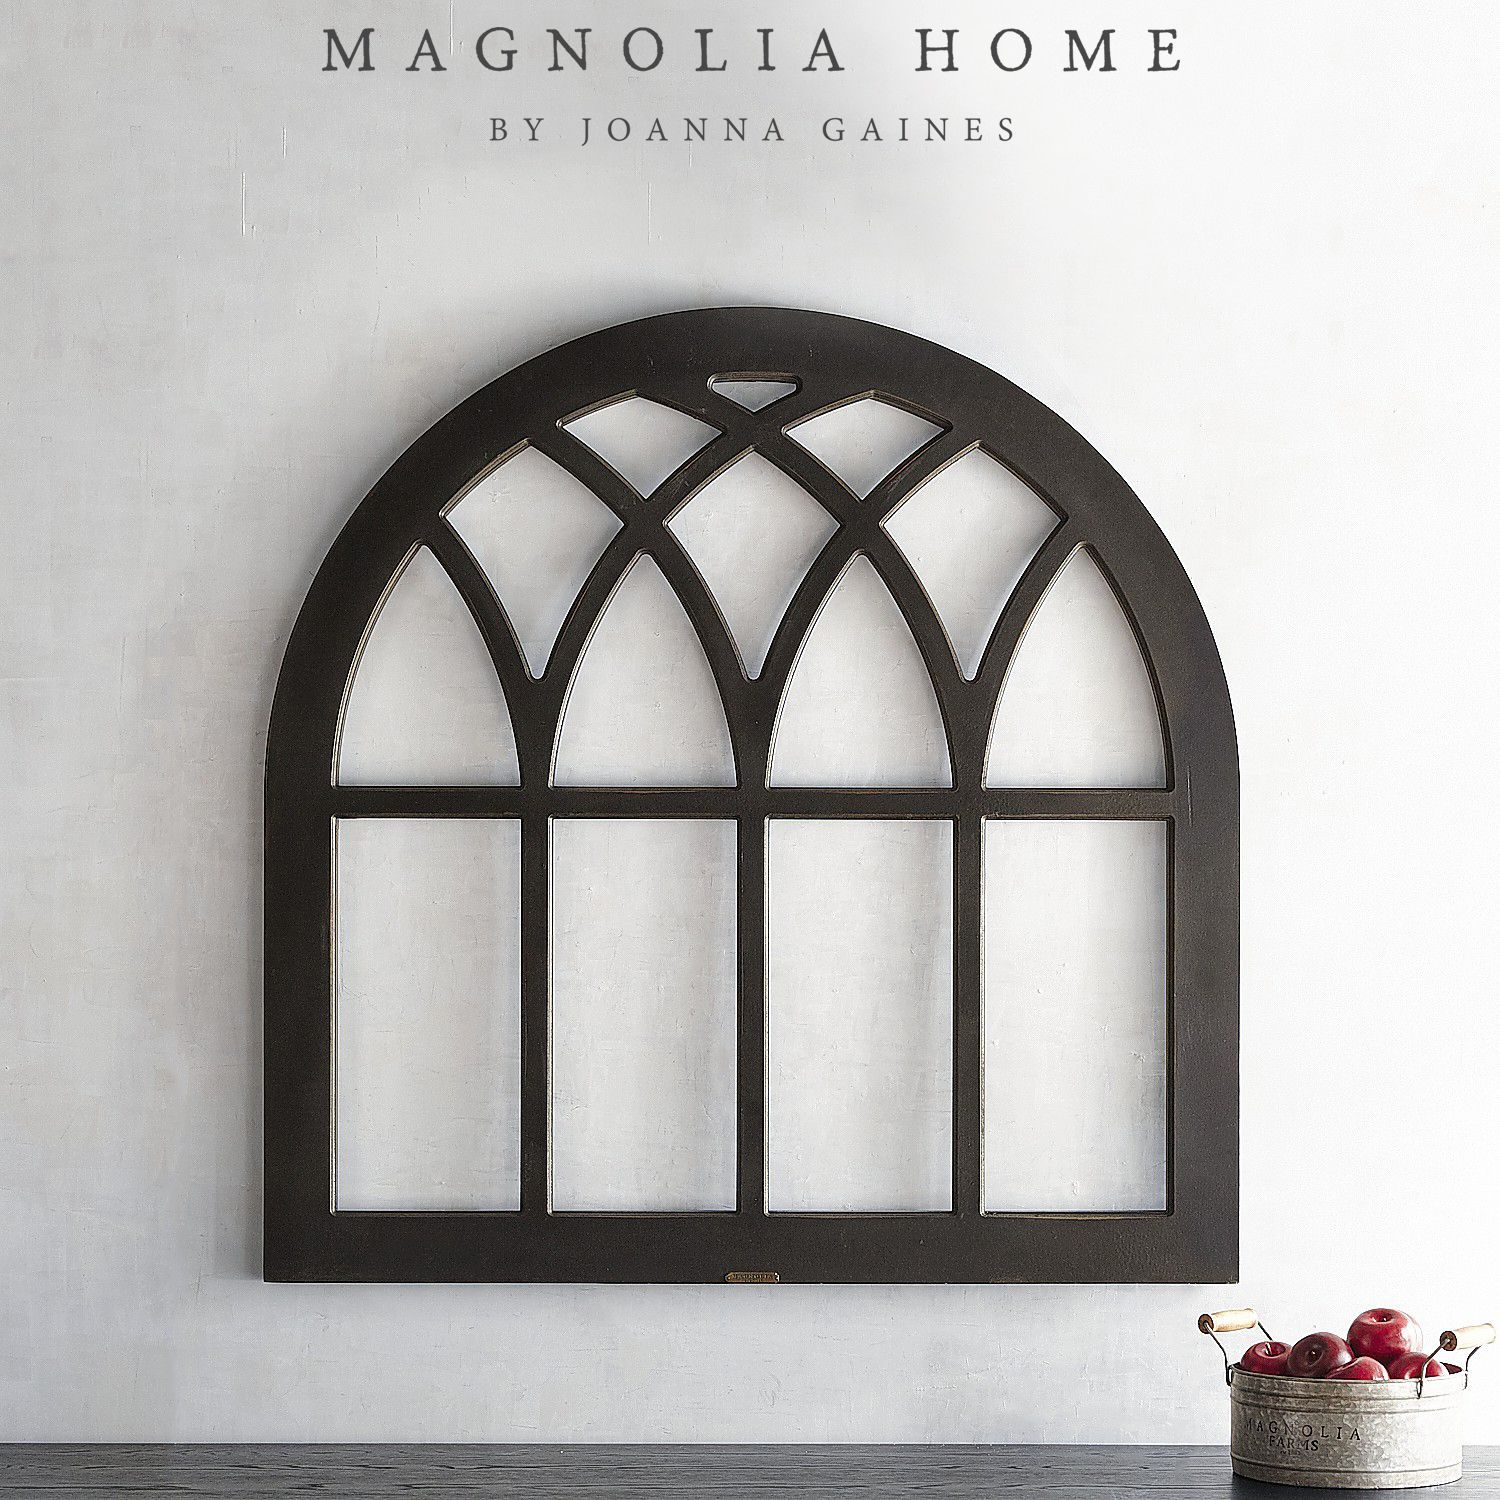 Garage door windows that open  Magnolia Home Cathedral Window Frame Wall Decor  Products